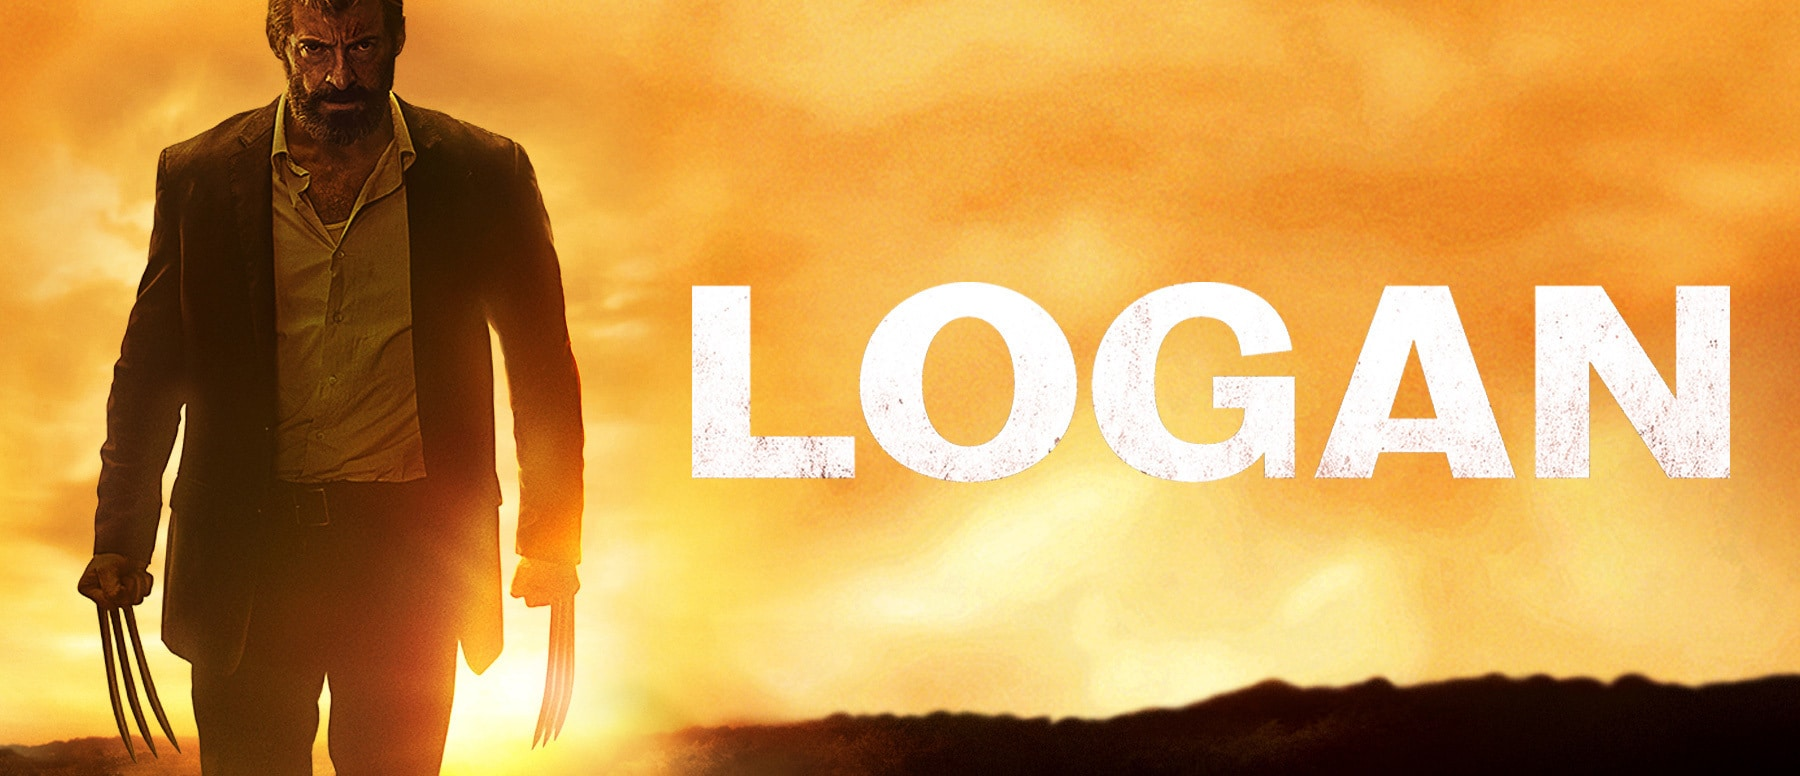 Cultural News: Logan is Fox's latest R-rated hit